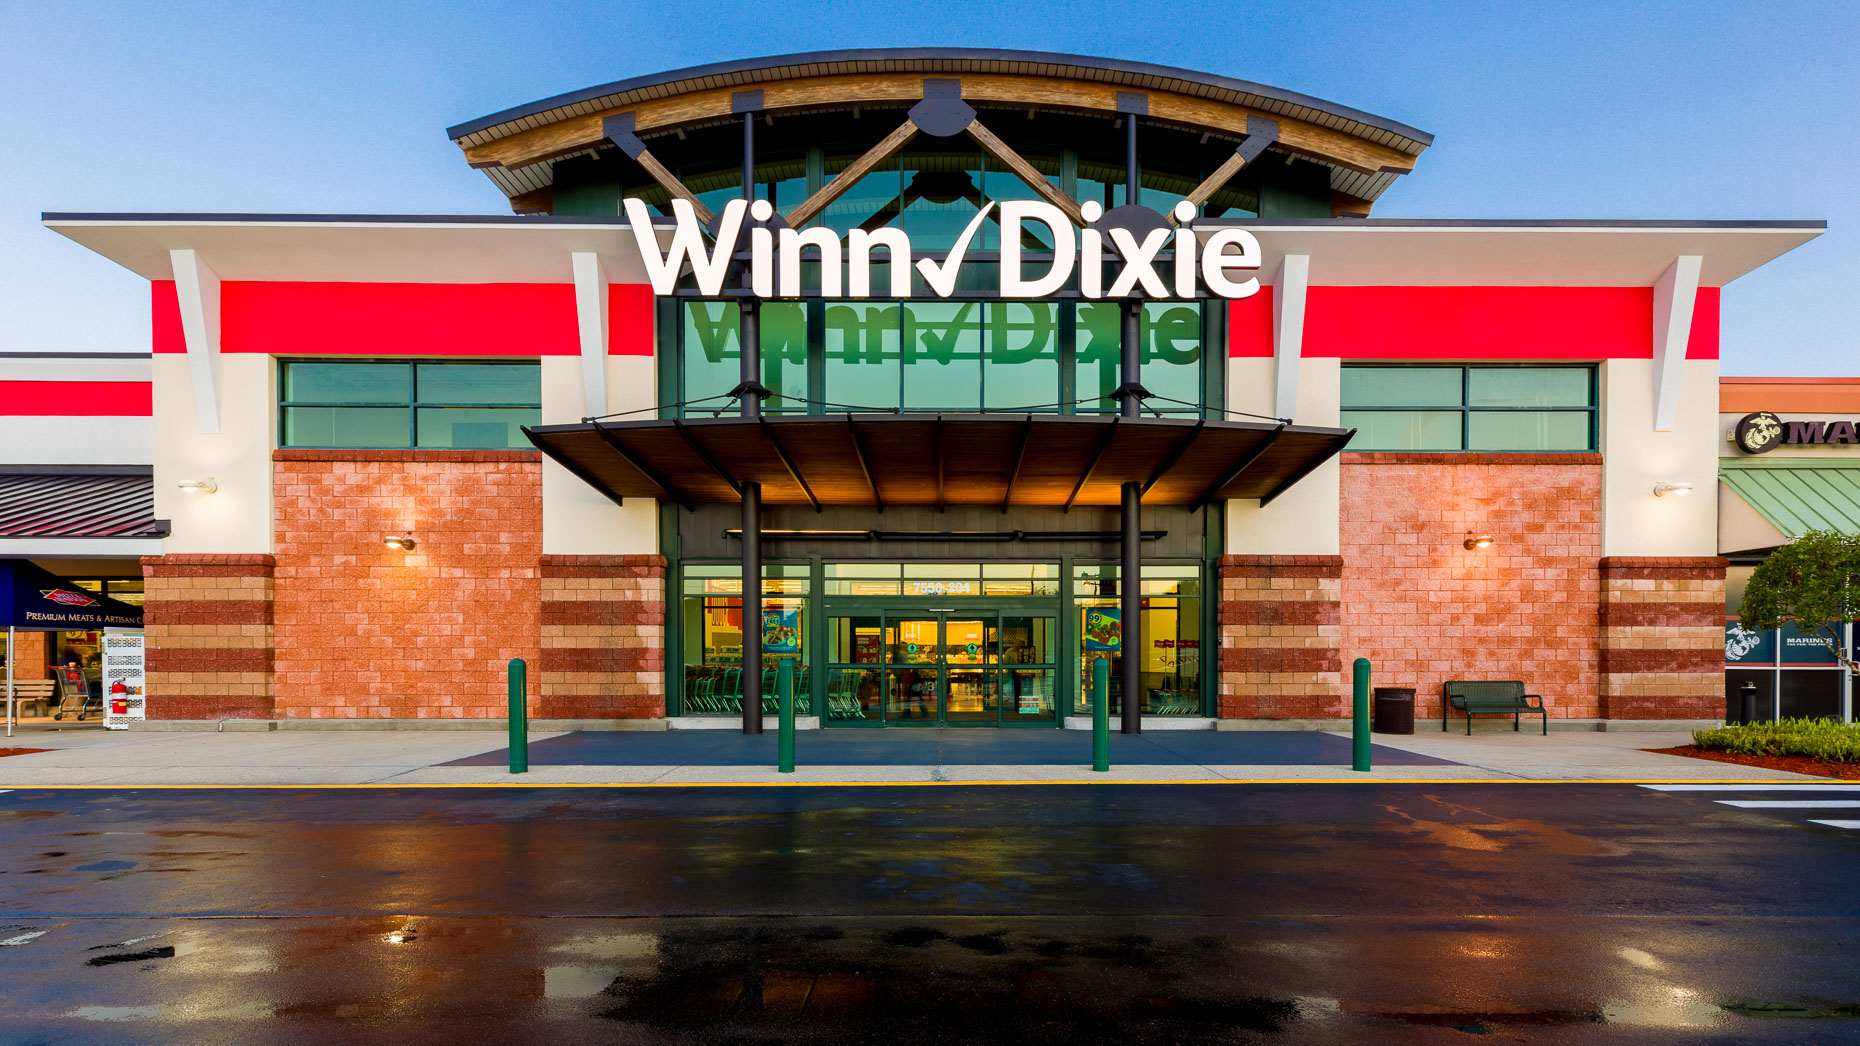 Exterior of a Winn Dixie grocery store